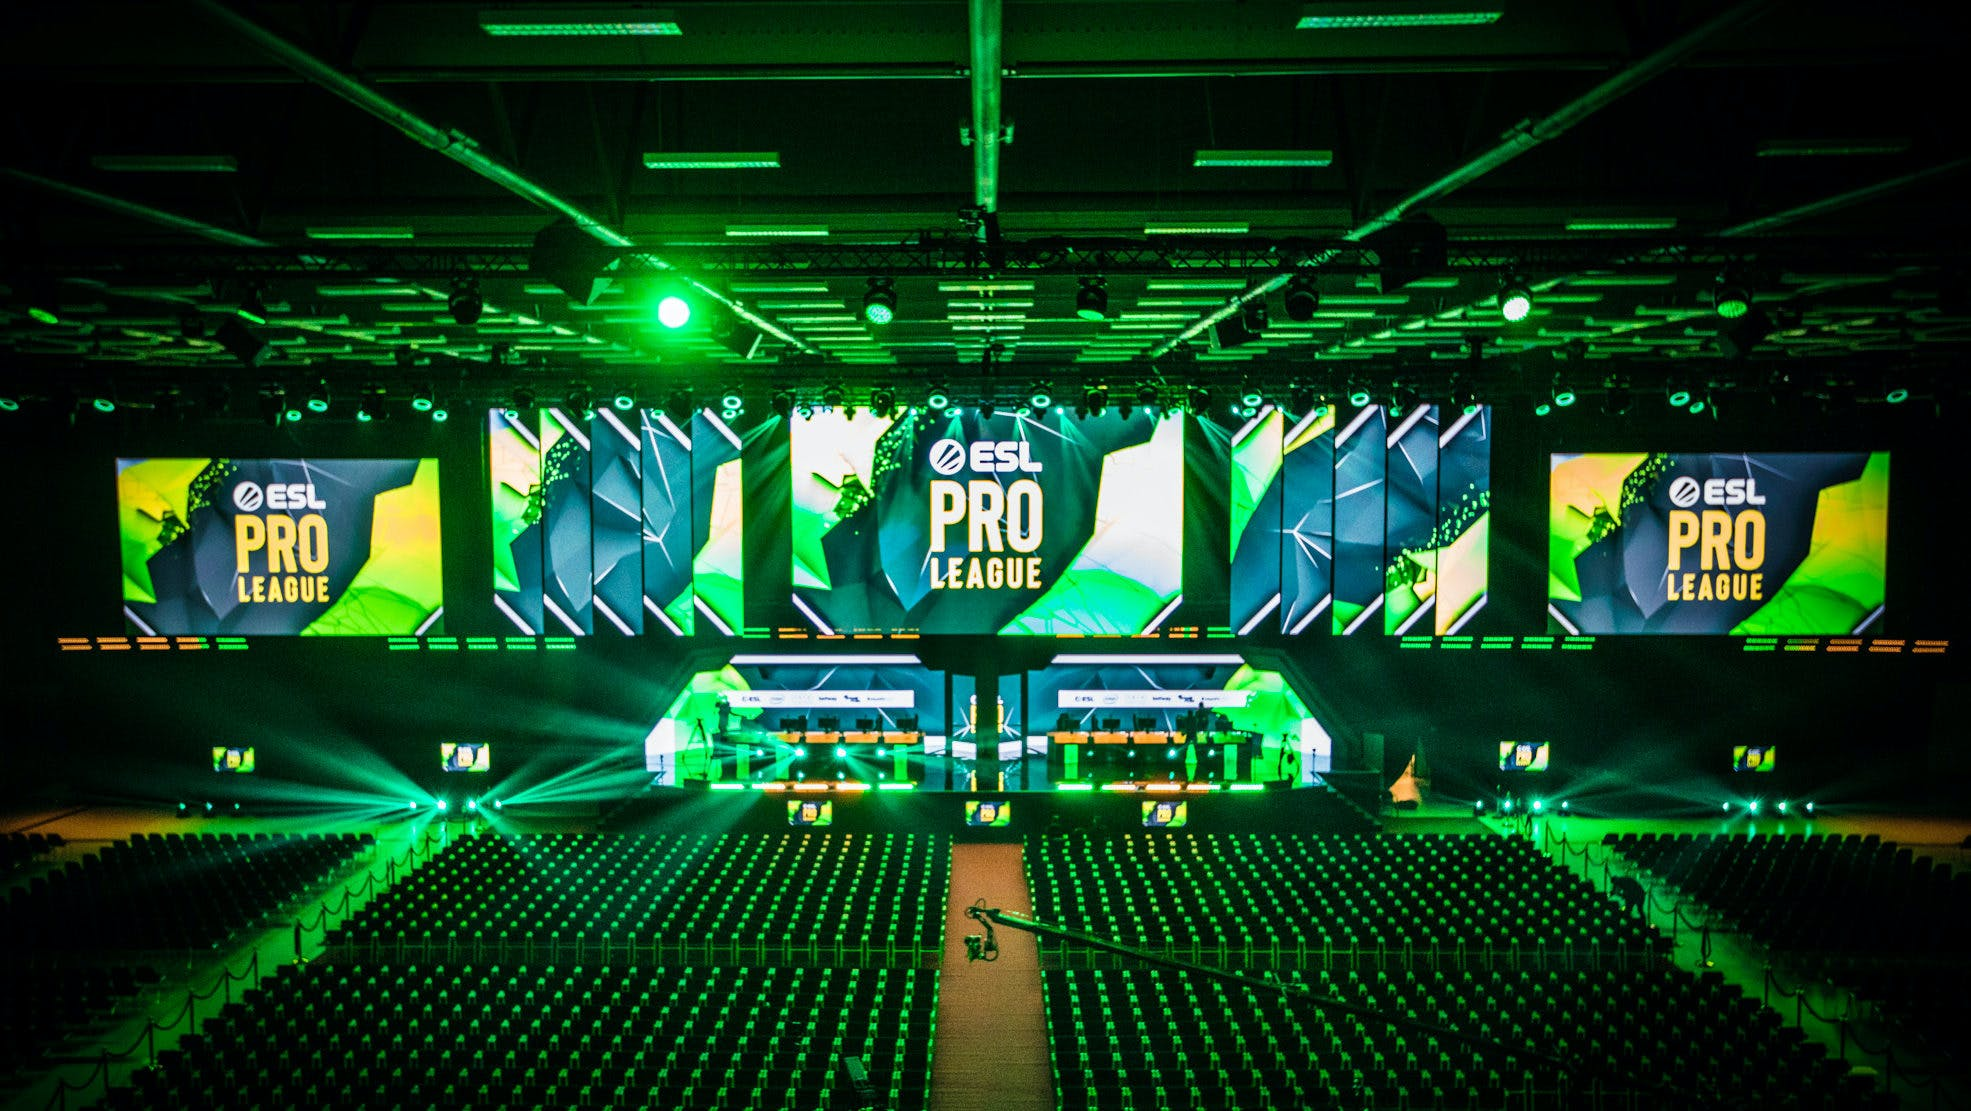 CSGO fan wins $7k on ESL Pro League betting